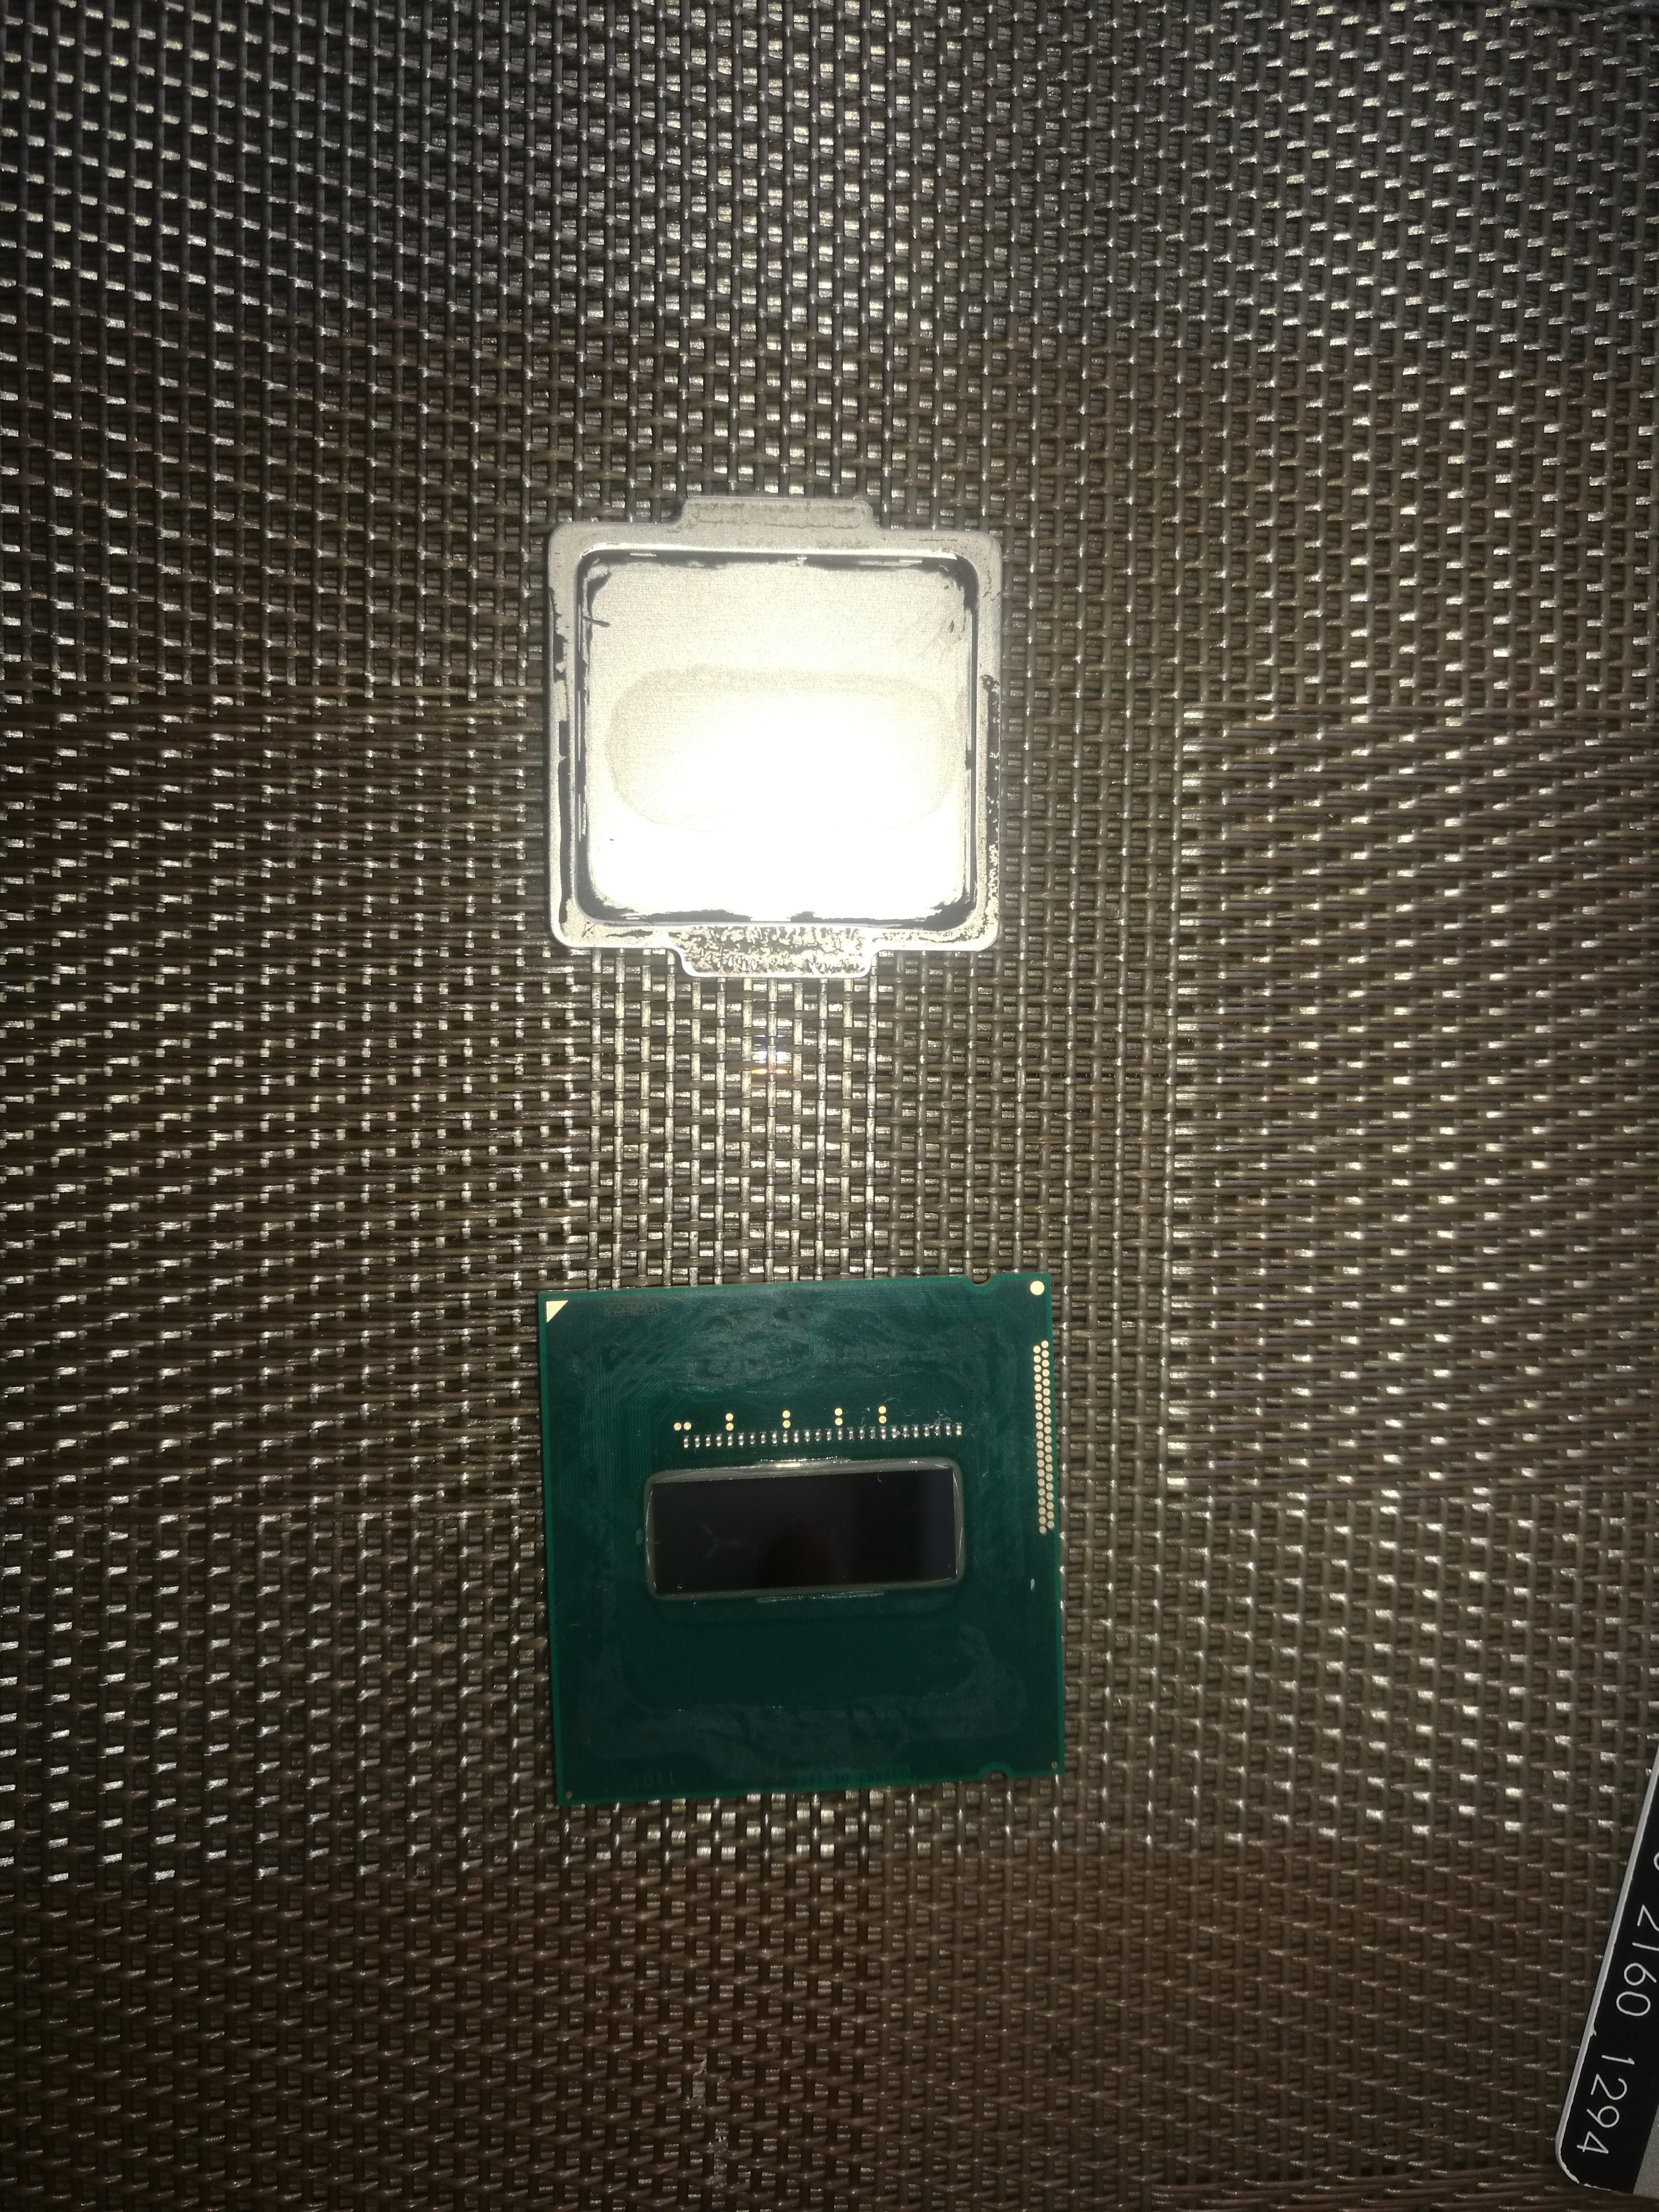 i7 4770k - Delided - CPUs, Motherboards, and Memory - Linus Tech Tips